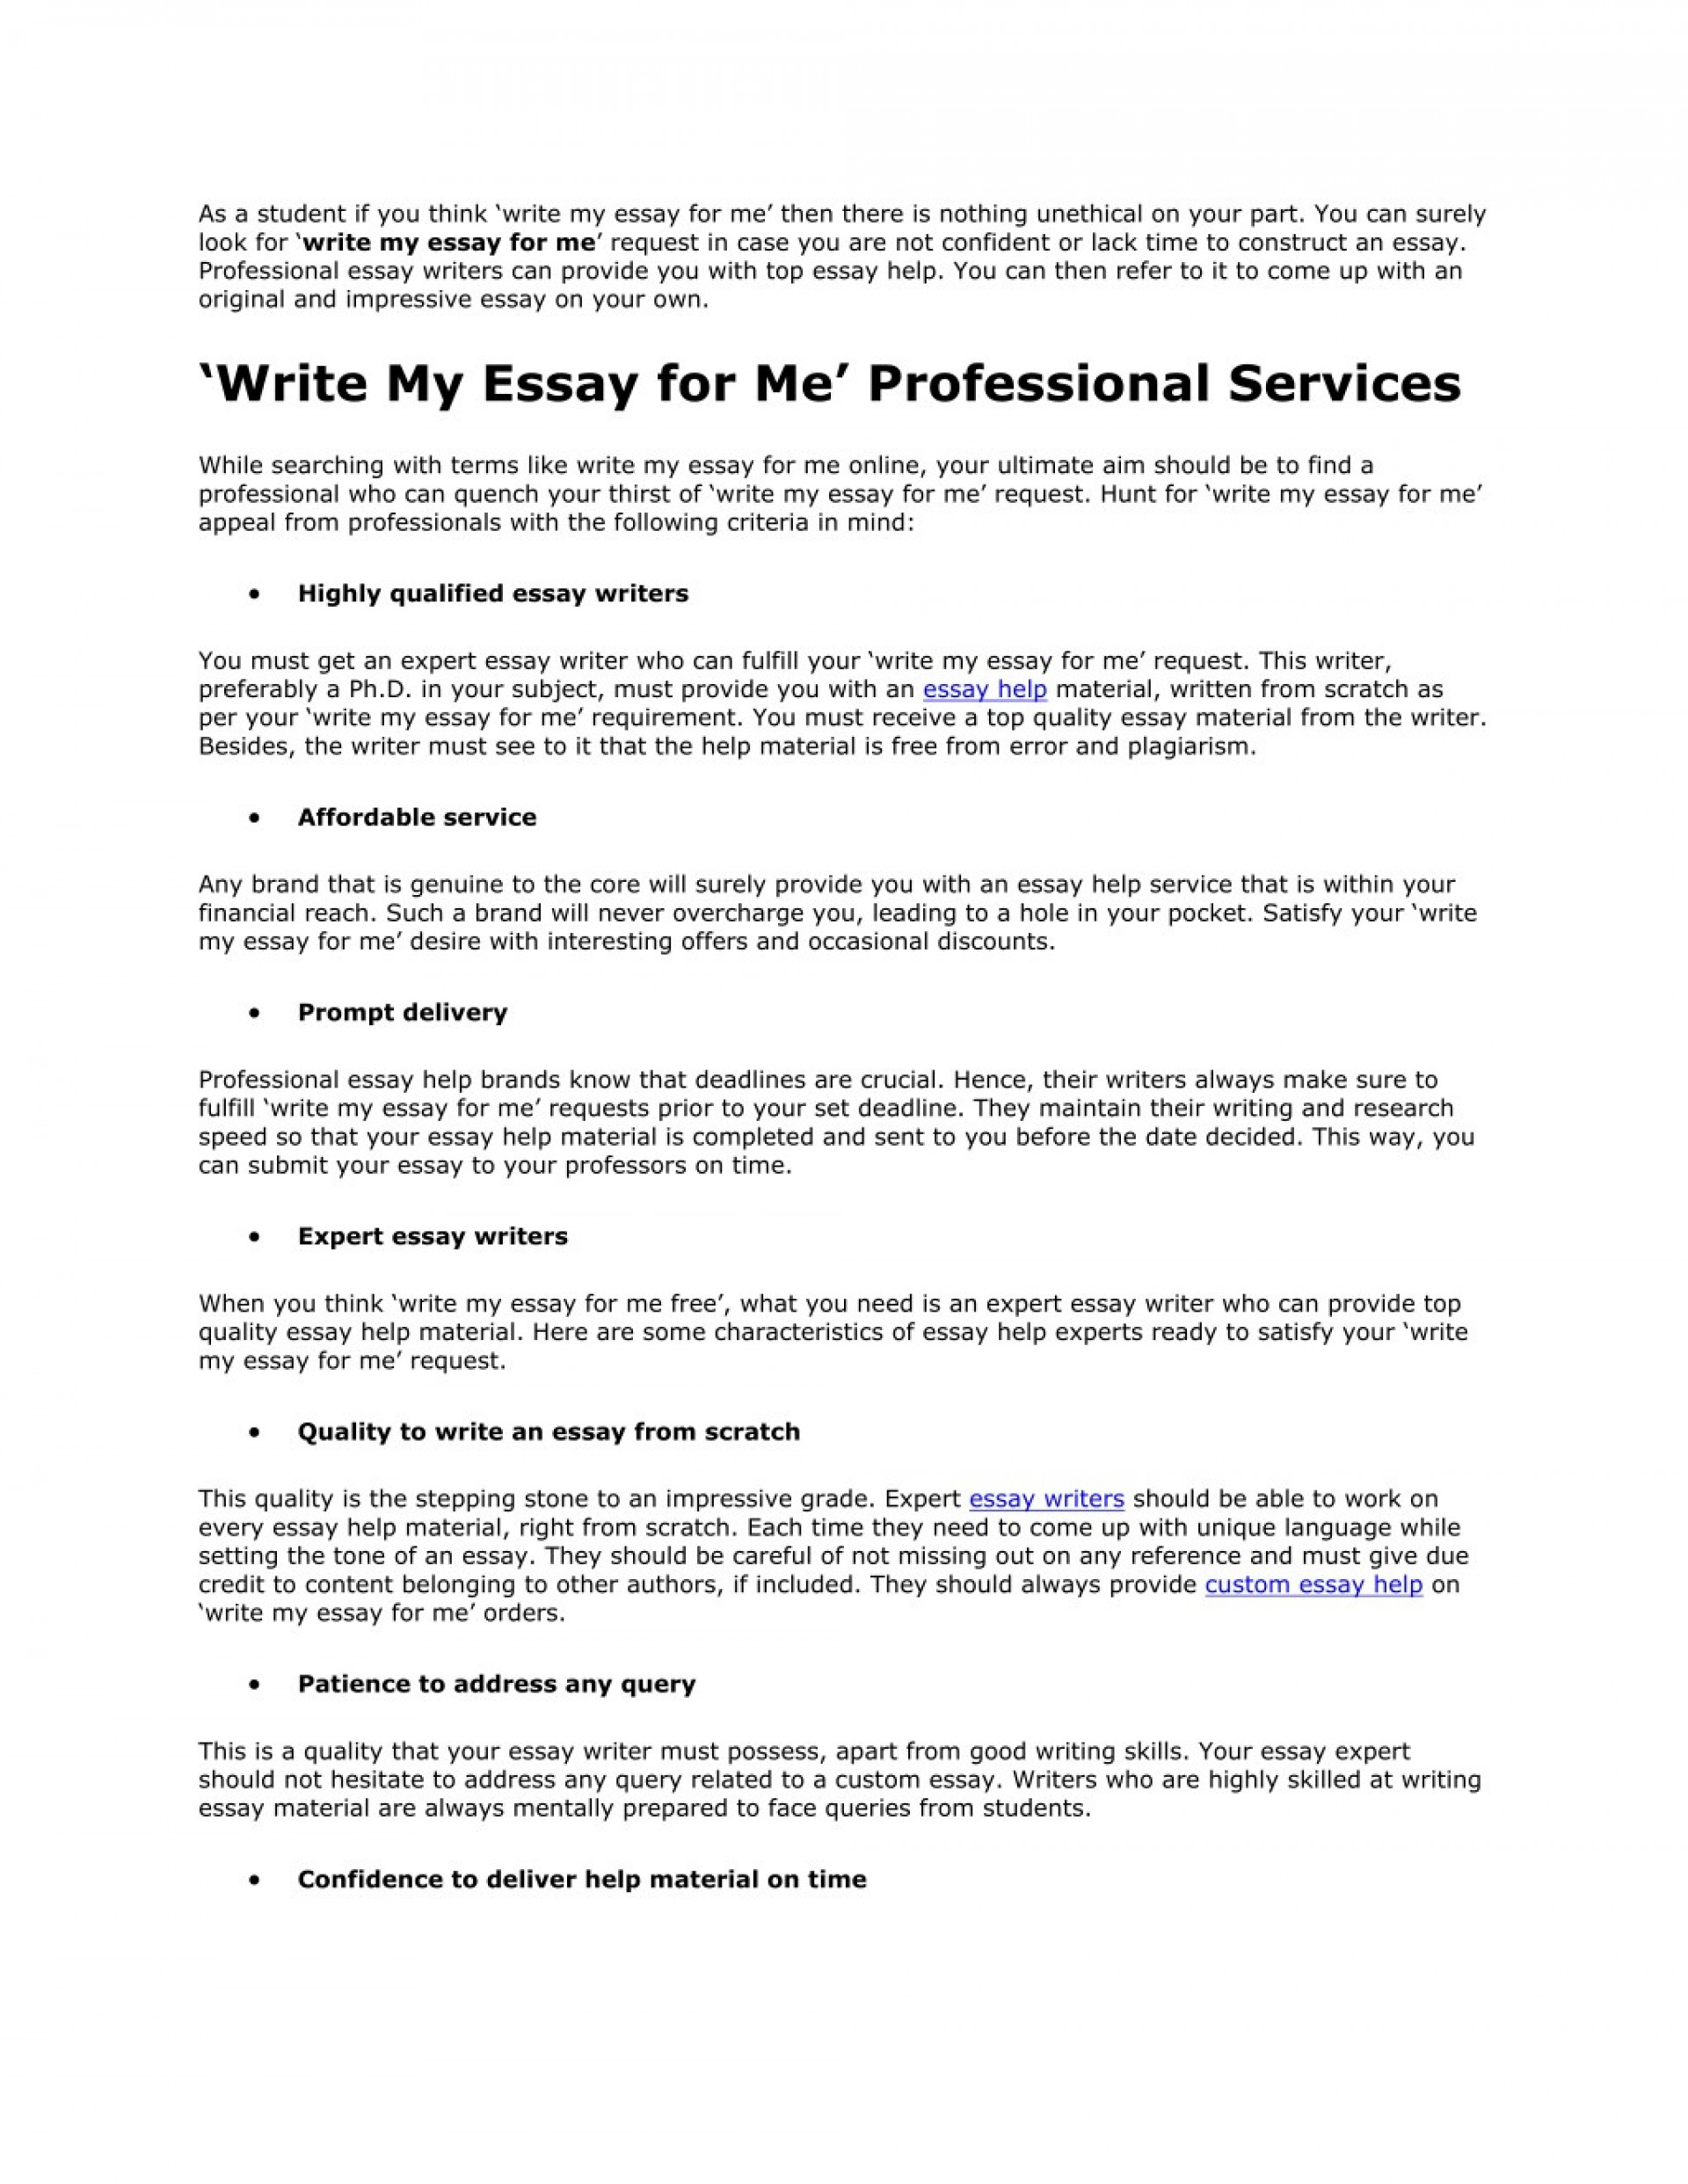 017 Write My Essay For Me Example As Student If You Think Surprising Reviews Canada Custom Cheap 1920